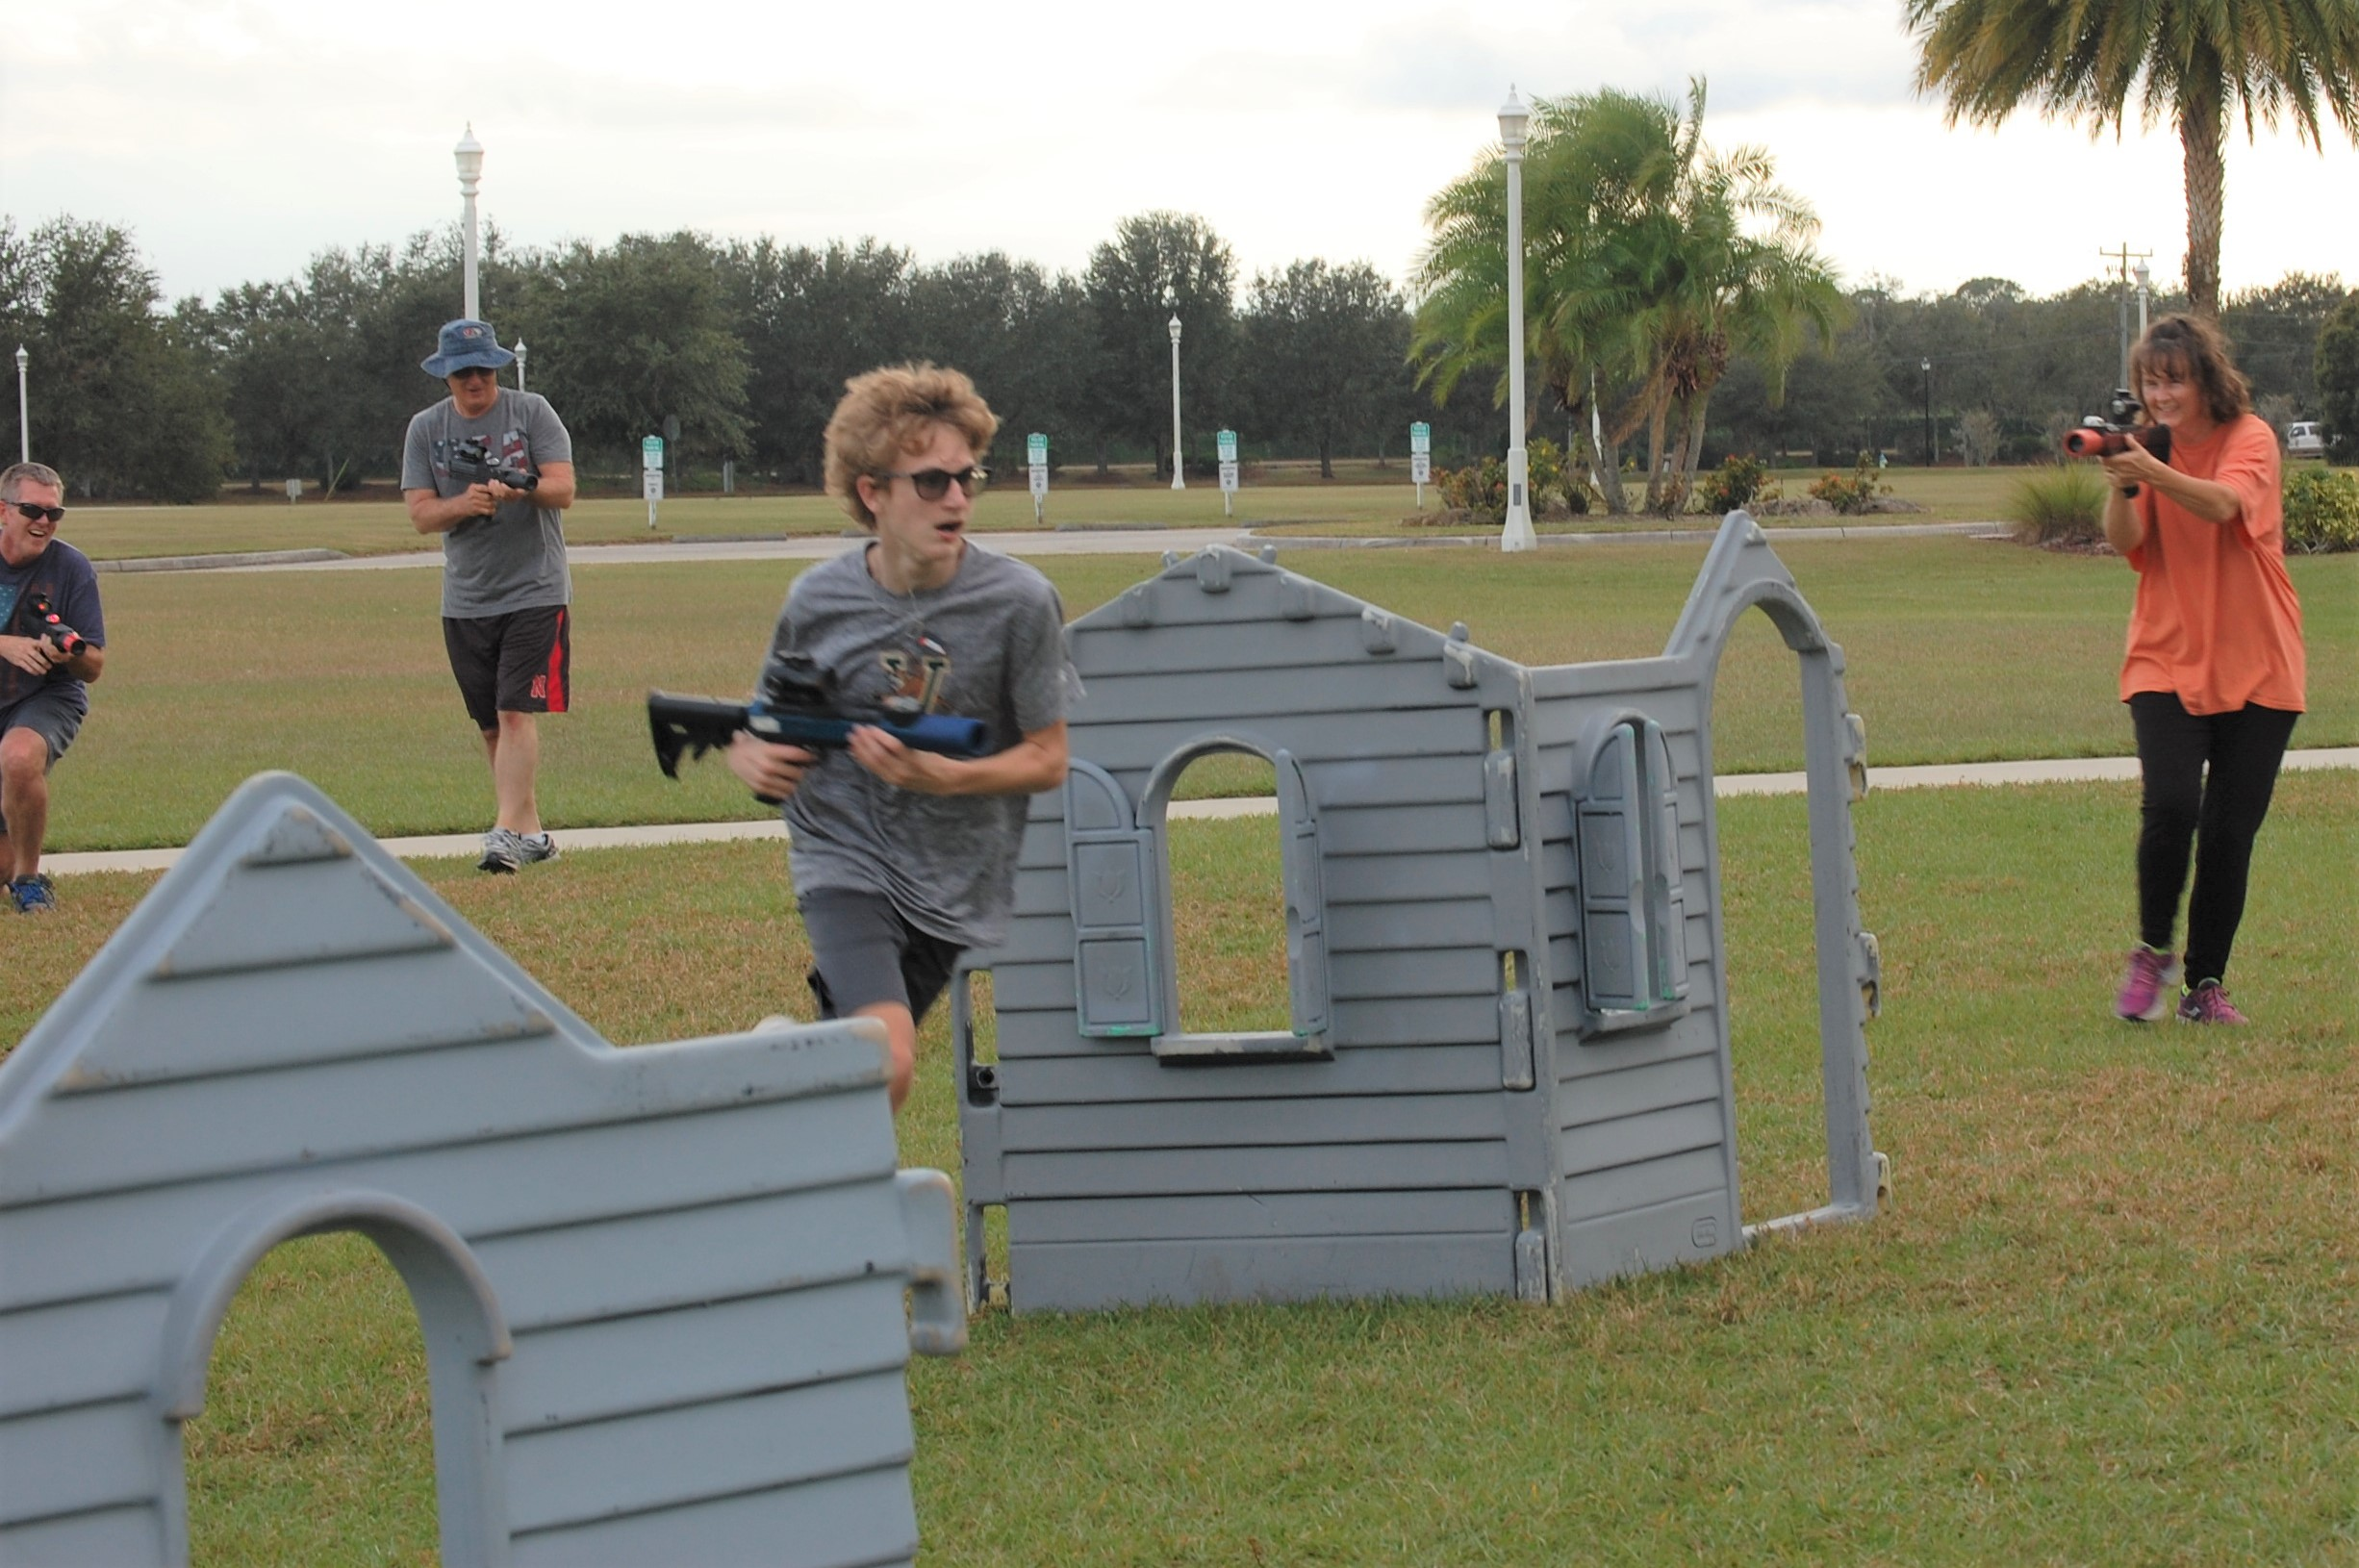 Birthday Party Ideas for Teens in FL